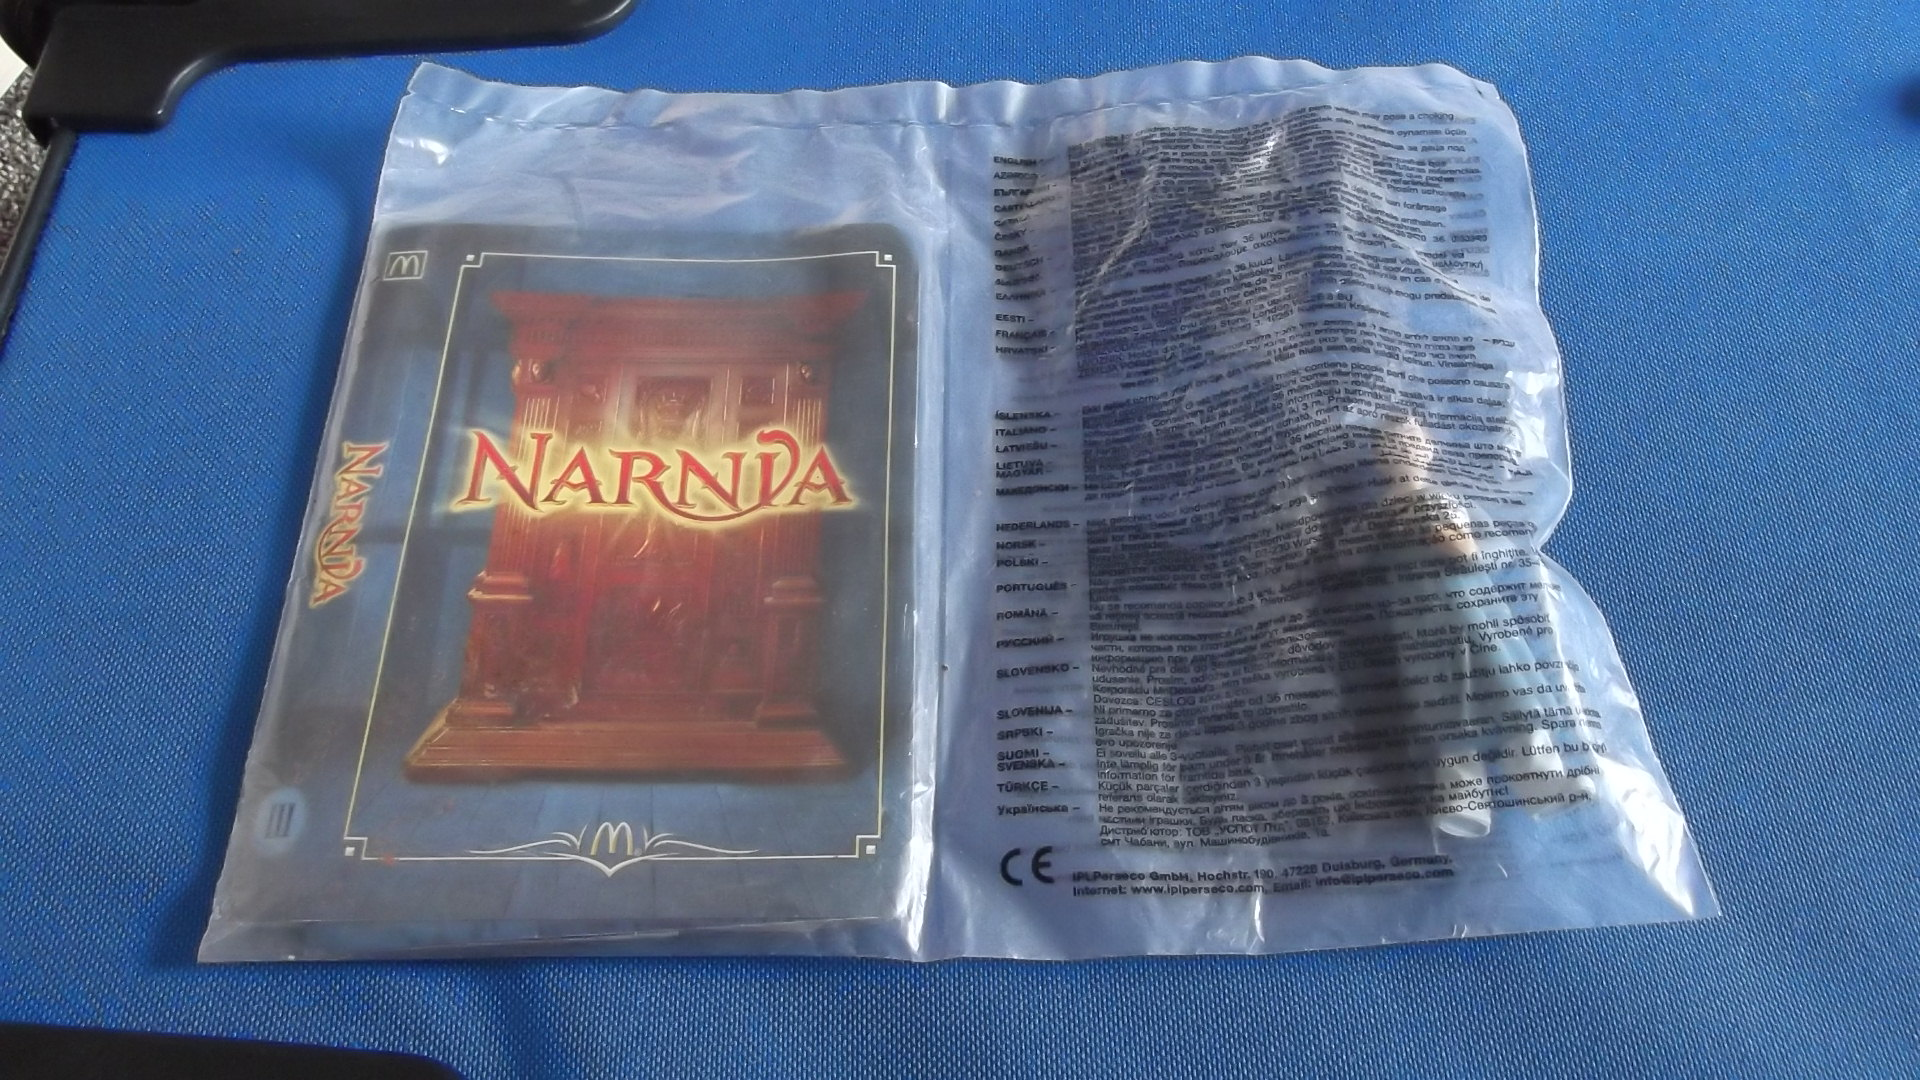 McDonalds Narnia Edmund Toy From 2005 New